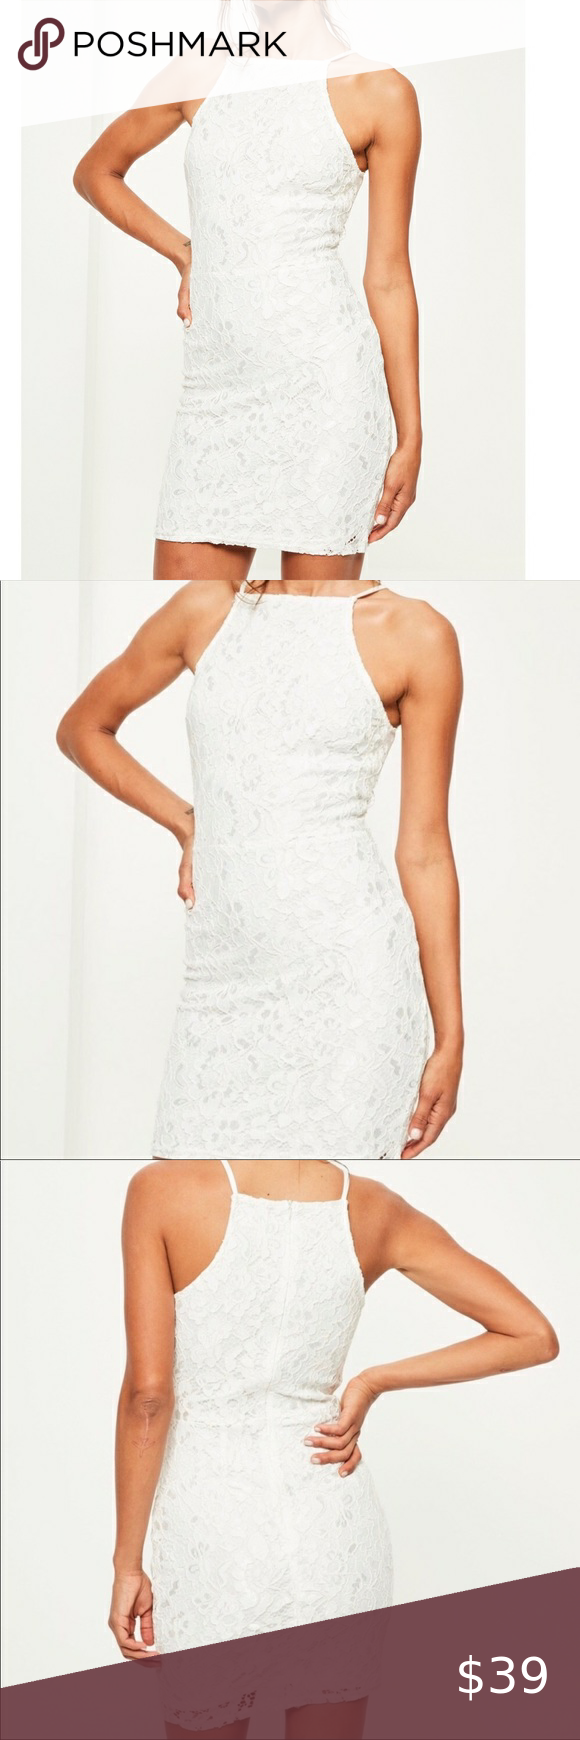 Nwt Missguided White Lace Bodycon Dress Us6 White Lace Bodycon Lace Bodycon Dress White Lace Bodycon Dress [ 1740 x 580 Pixel ]